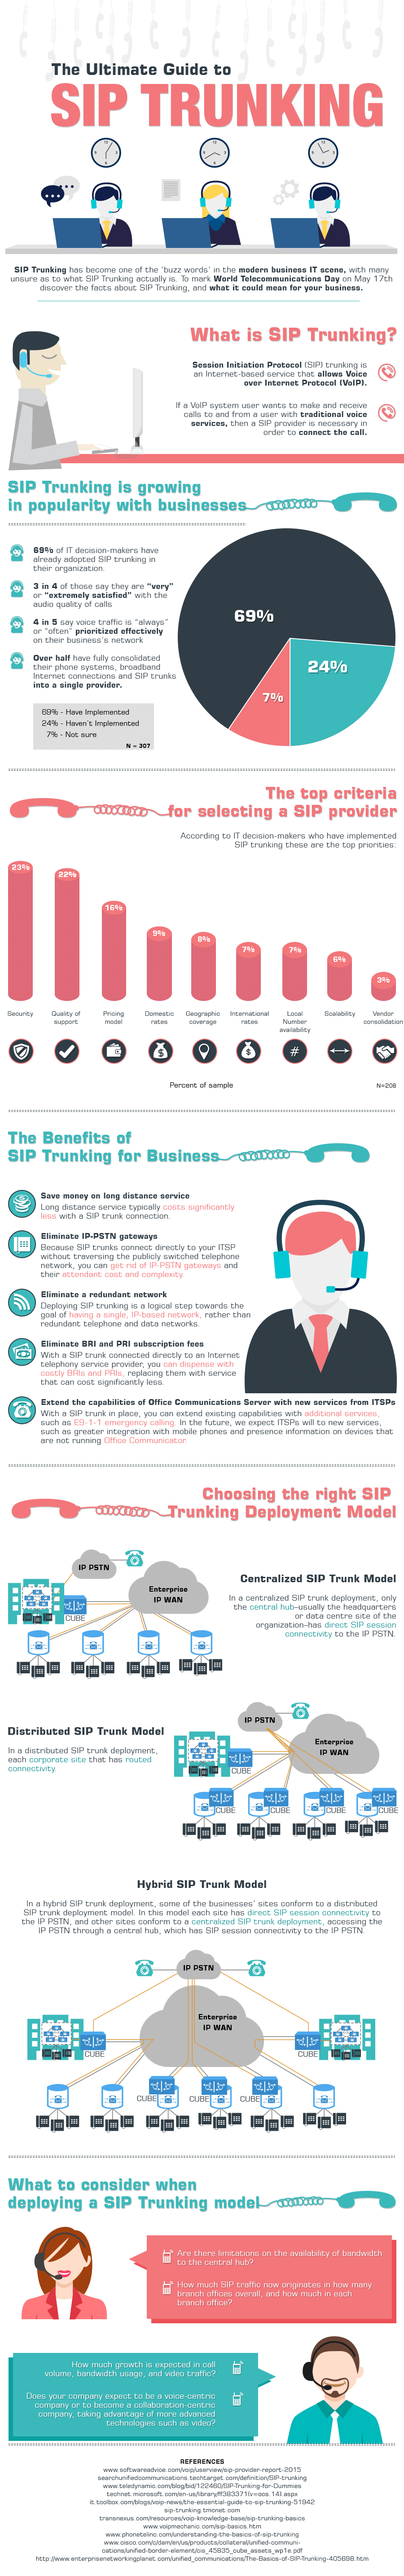 Guide to SIP Trunking Infographic